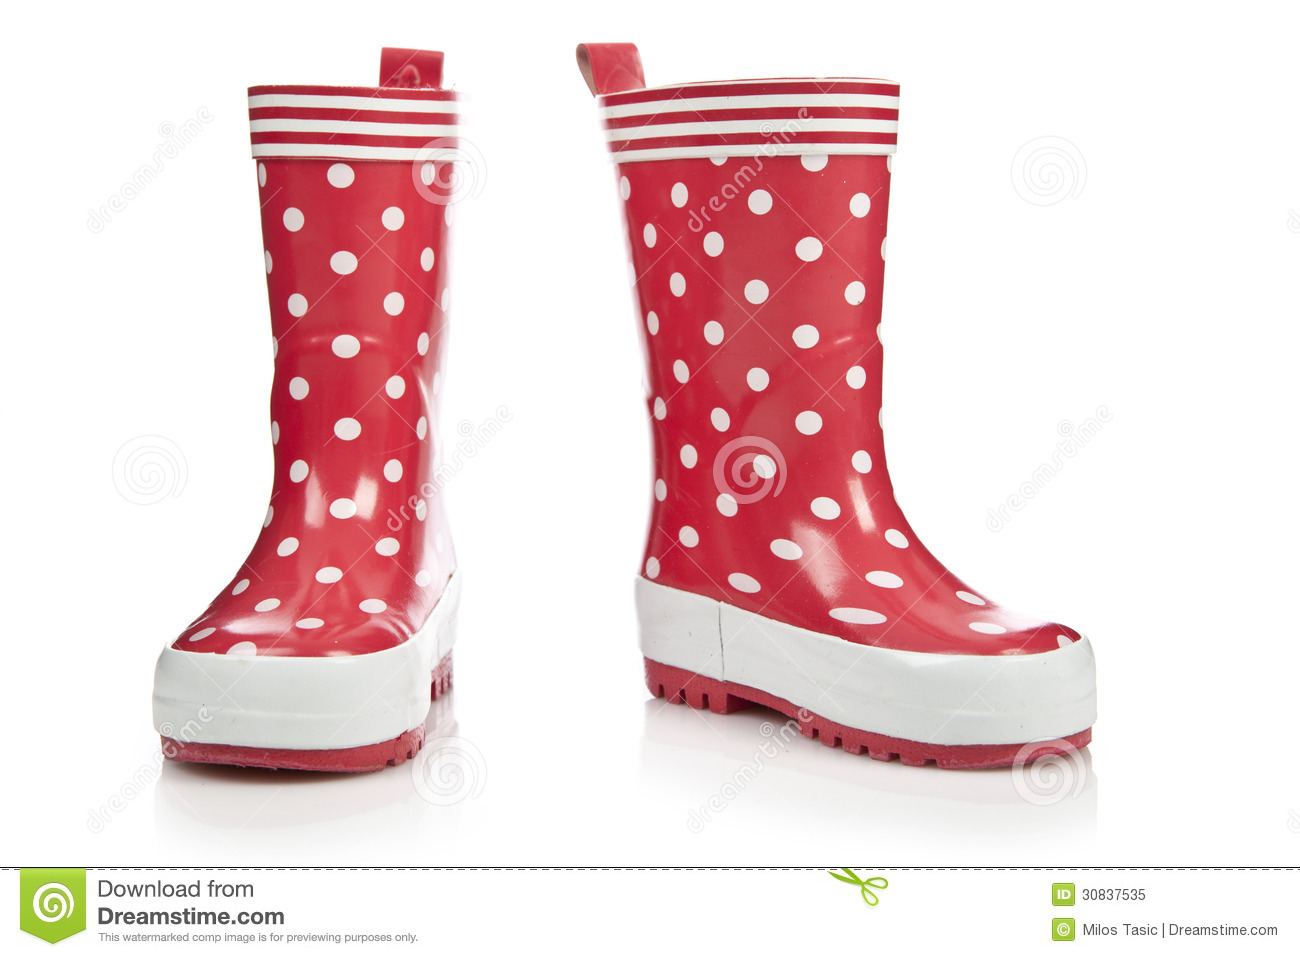 c36b53d7fad7 Red rubber boots for kids isolated on white background